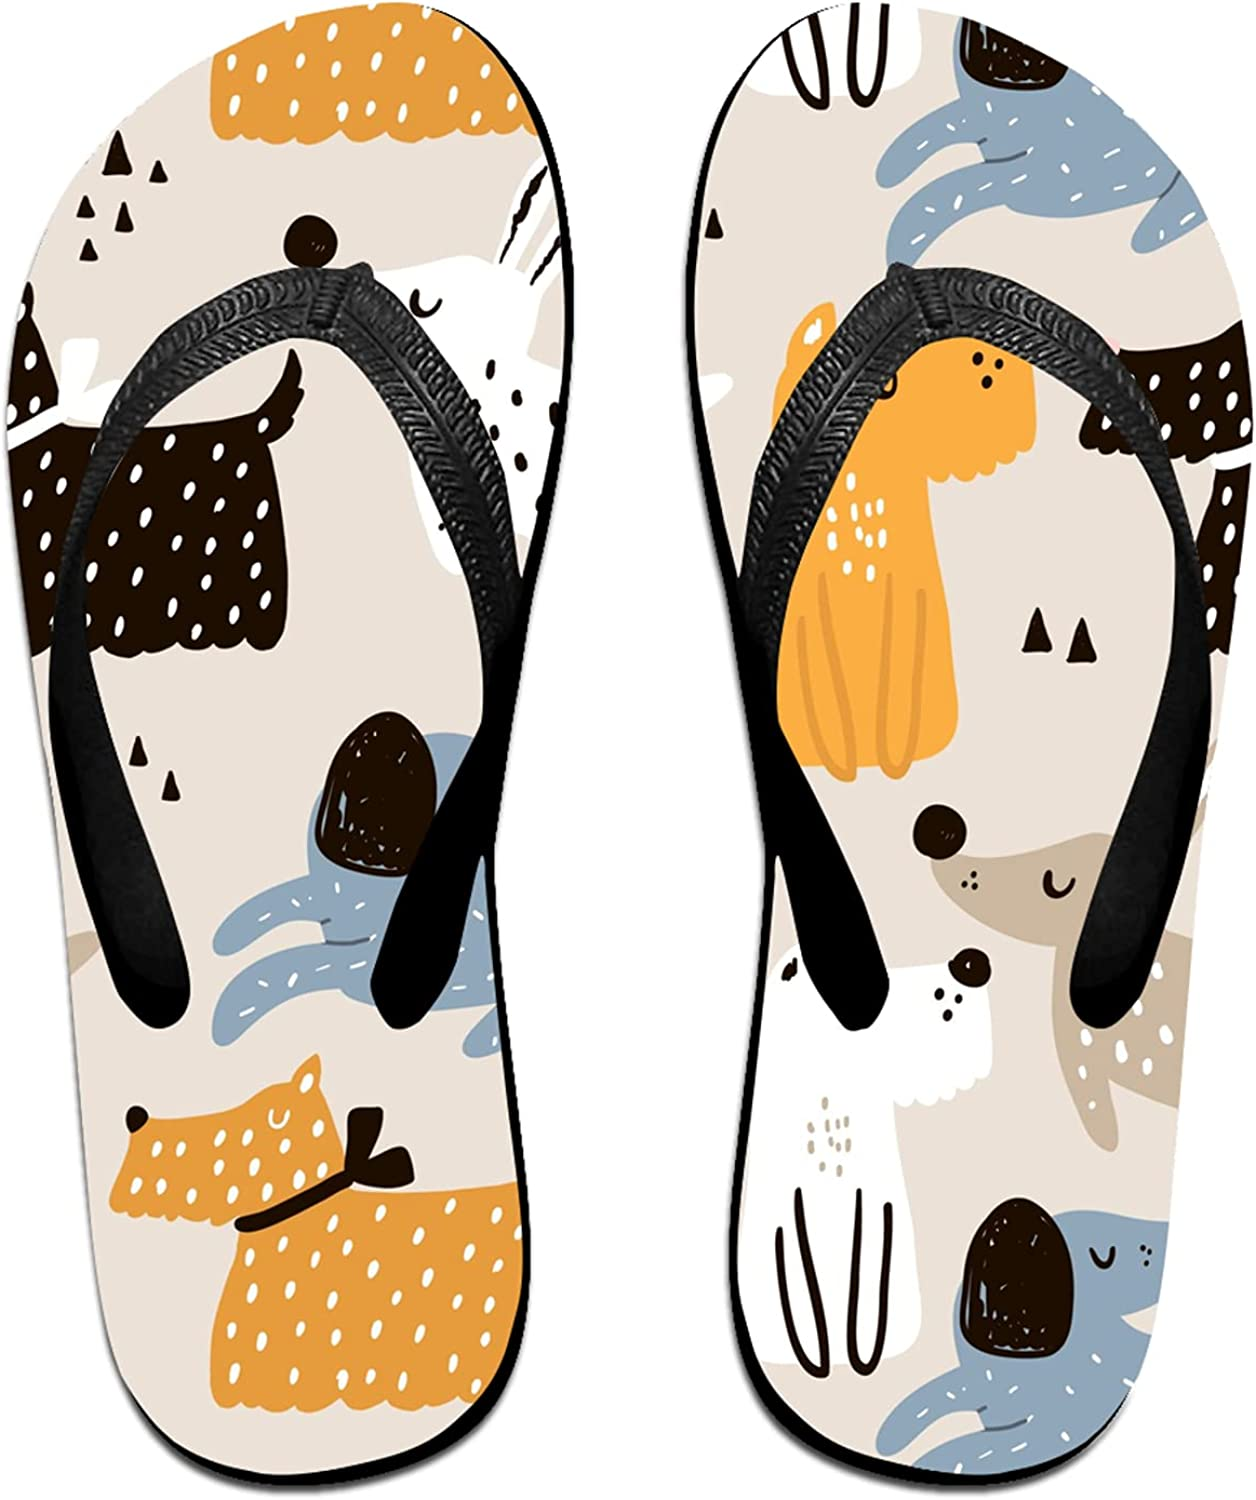 Women's Men's Max 62% OFF Flip Flop Slippers Hand Max 42% OFF Adults Classi Drawn Dogs